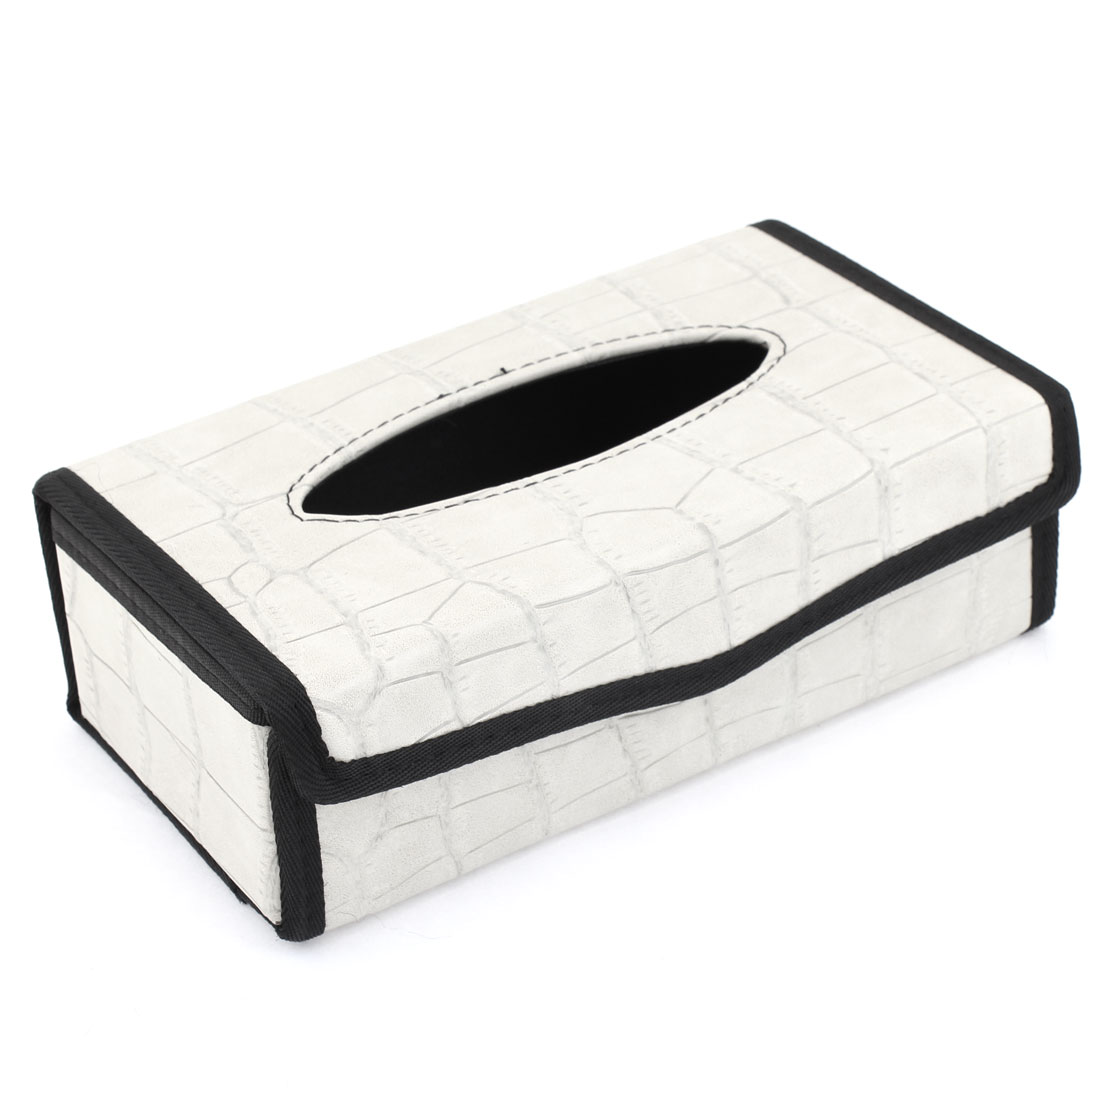 Van Car Turck Black Pale Gray Crocodile Print Paper Tissue Box Case